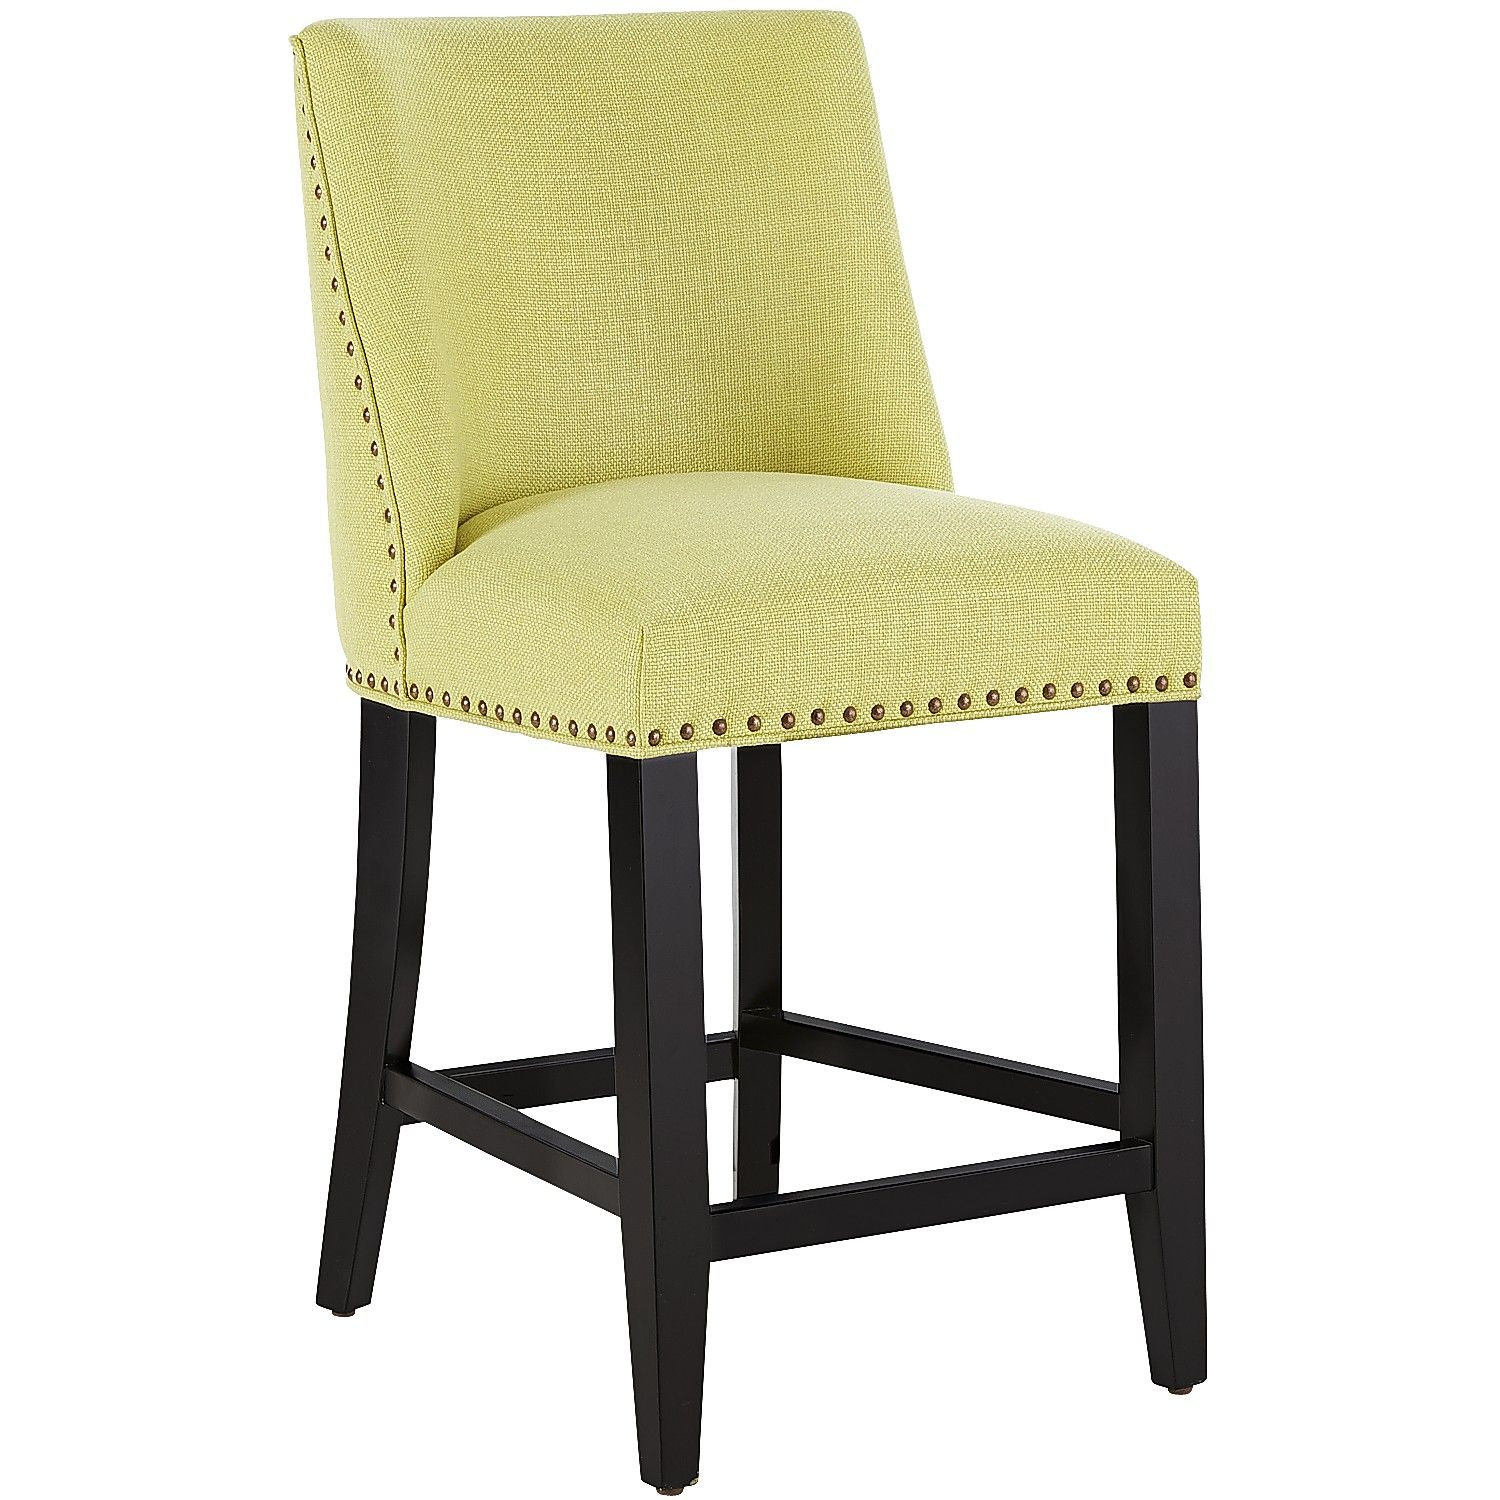 Green Corinne Counter Stool - Kiwi | *Chairs > Bar Stools ...